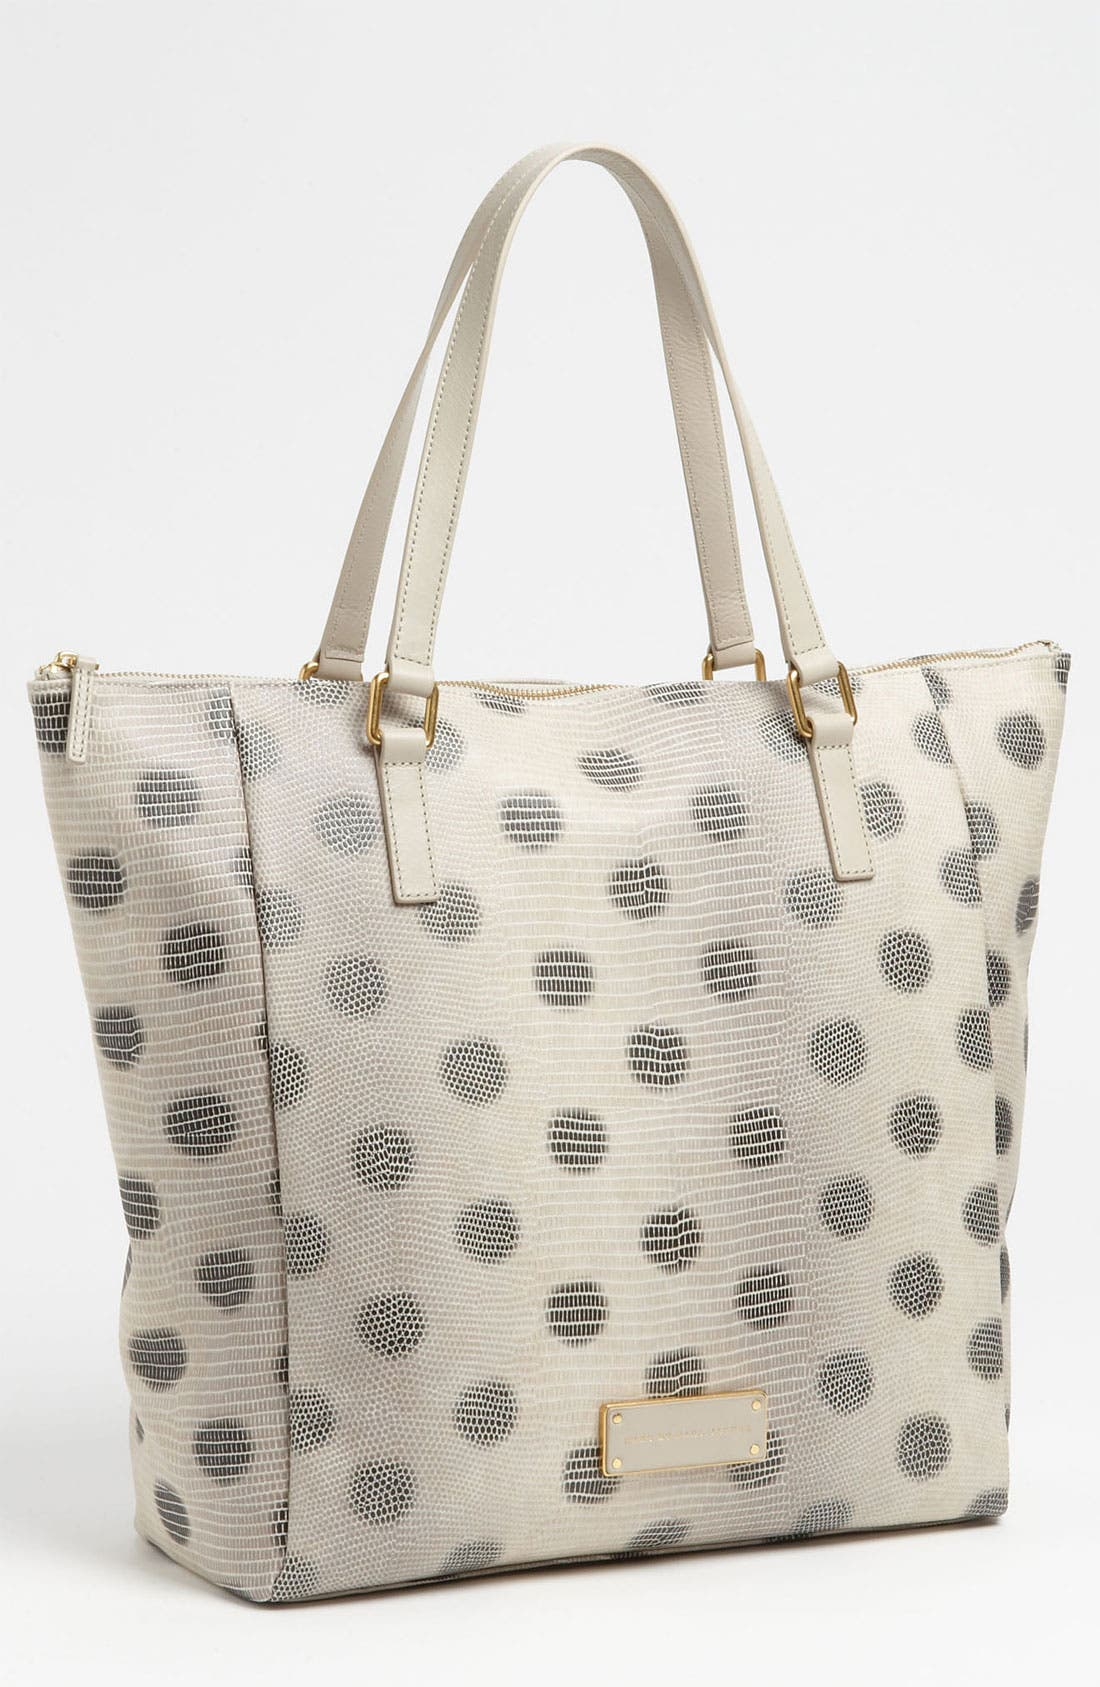 Alternate Image 1 Selected - MARC BY MARC JACOBS 'Take Me - Lizzie Spot' Embossed Tote